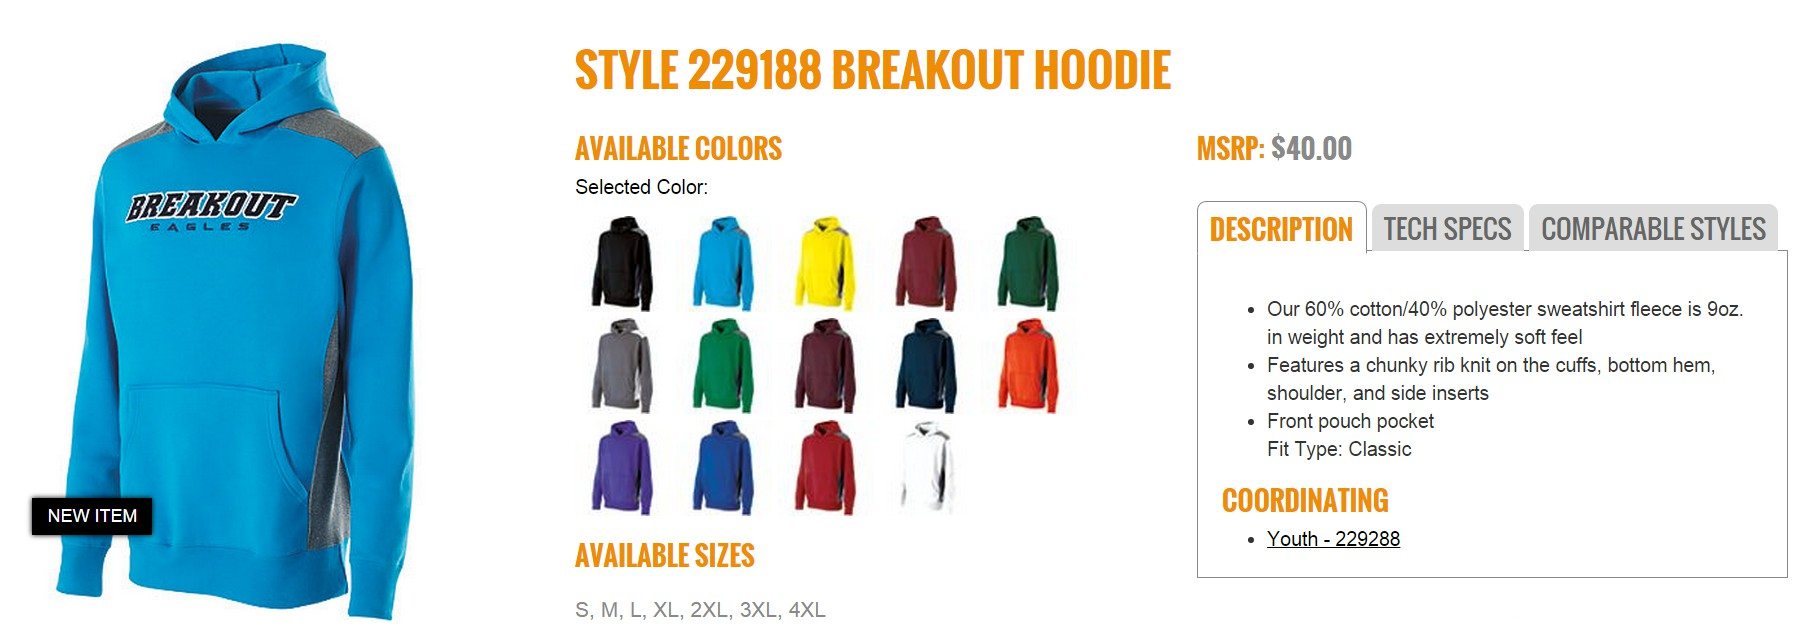 Group Fundraising Store Apparel Fundraising Holloway Breakout Hoodie 229188